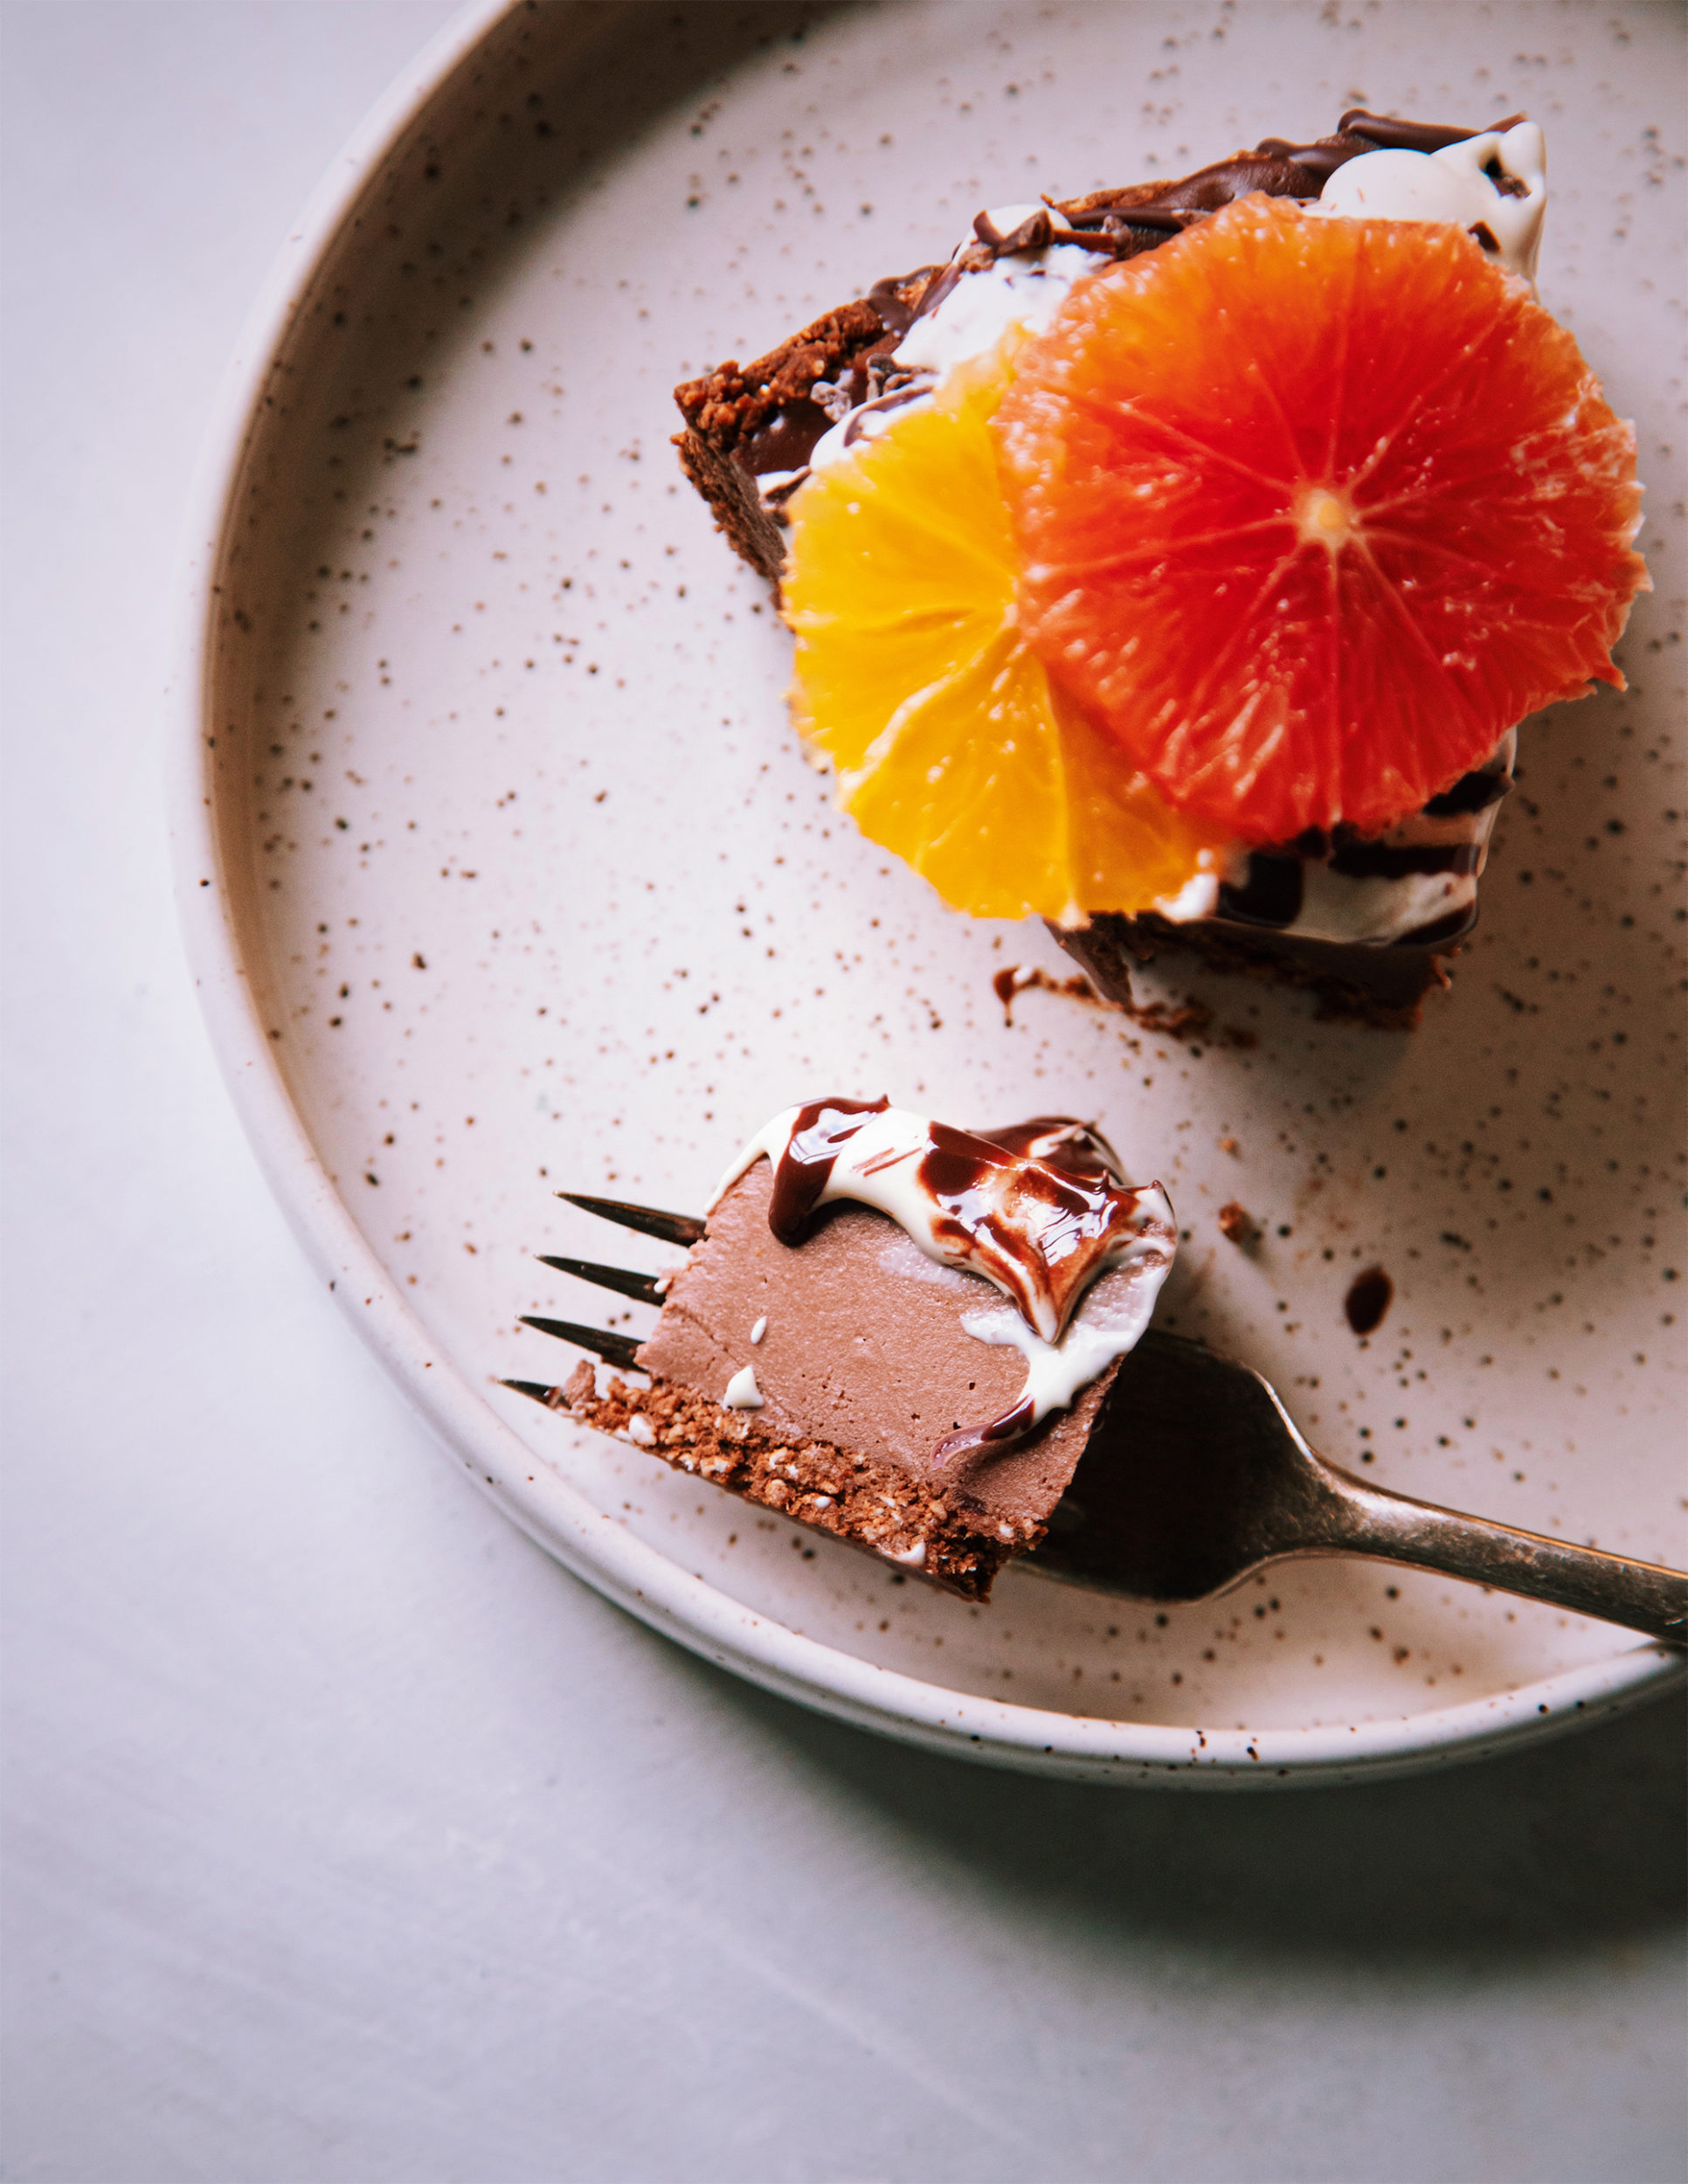 An up close, overhead shot of a slice of chocolate cheesecake with a forkful nearby on a white speckled plate.